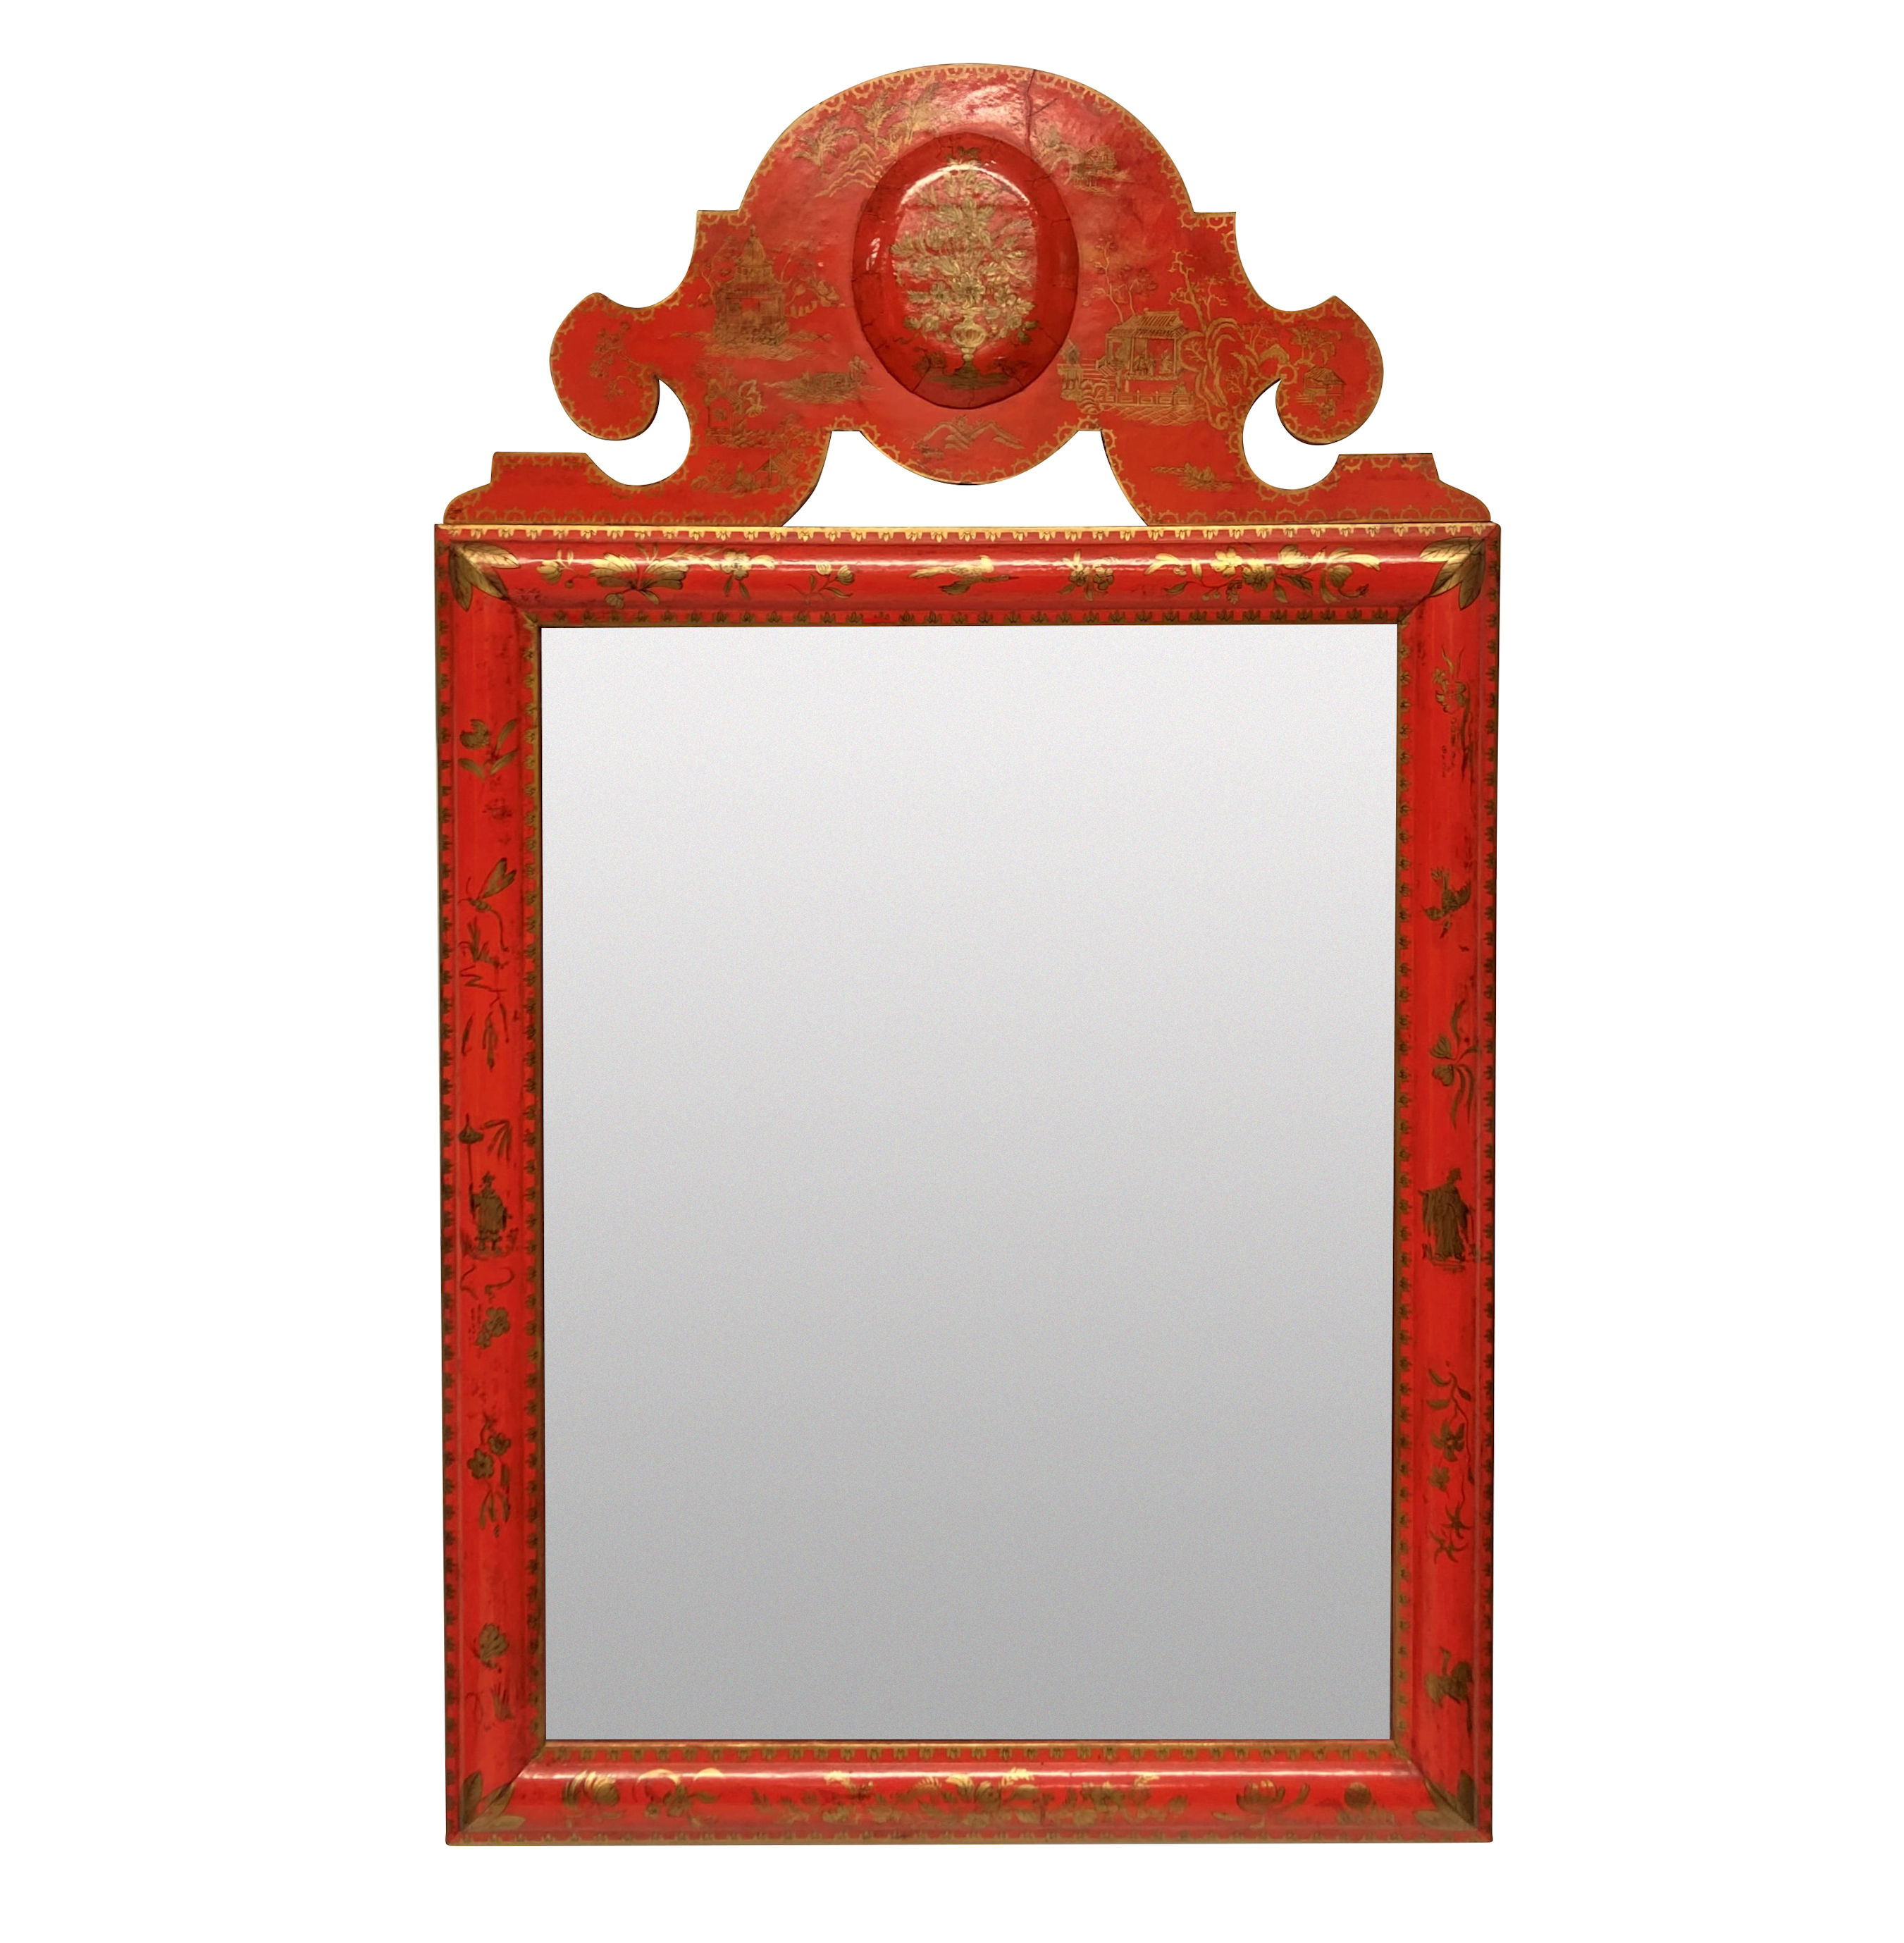 A SCARLET JAPANNED WILLIAM & MARY STYLE MIRROR